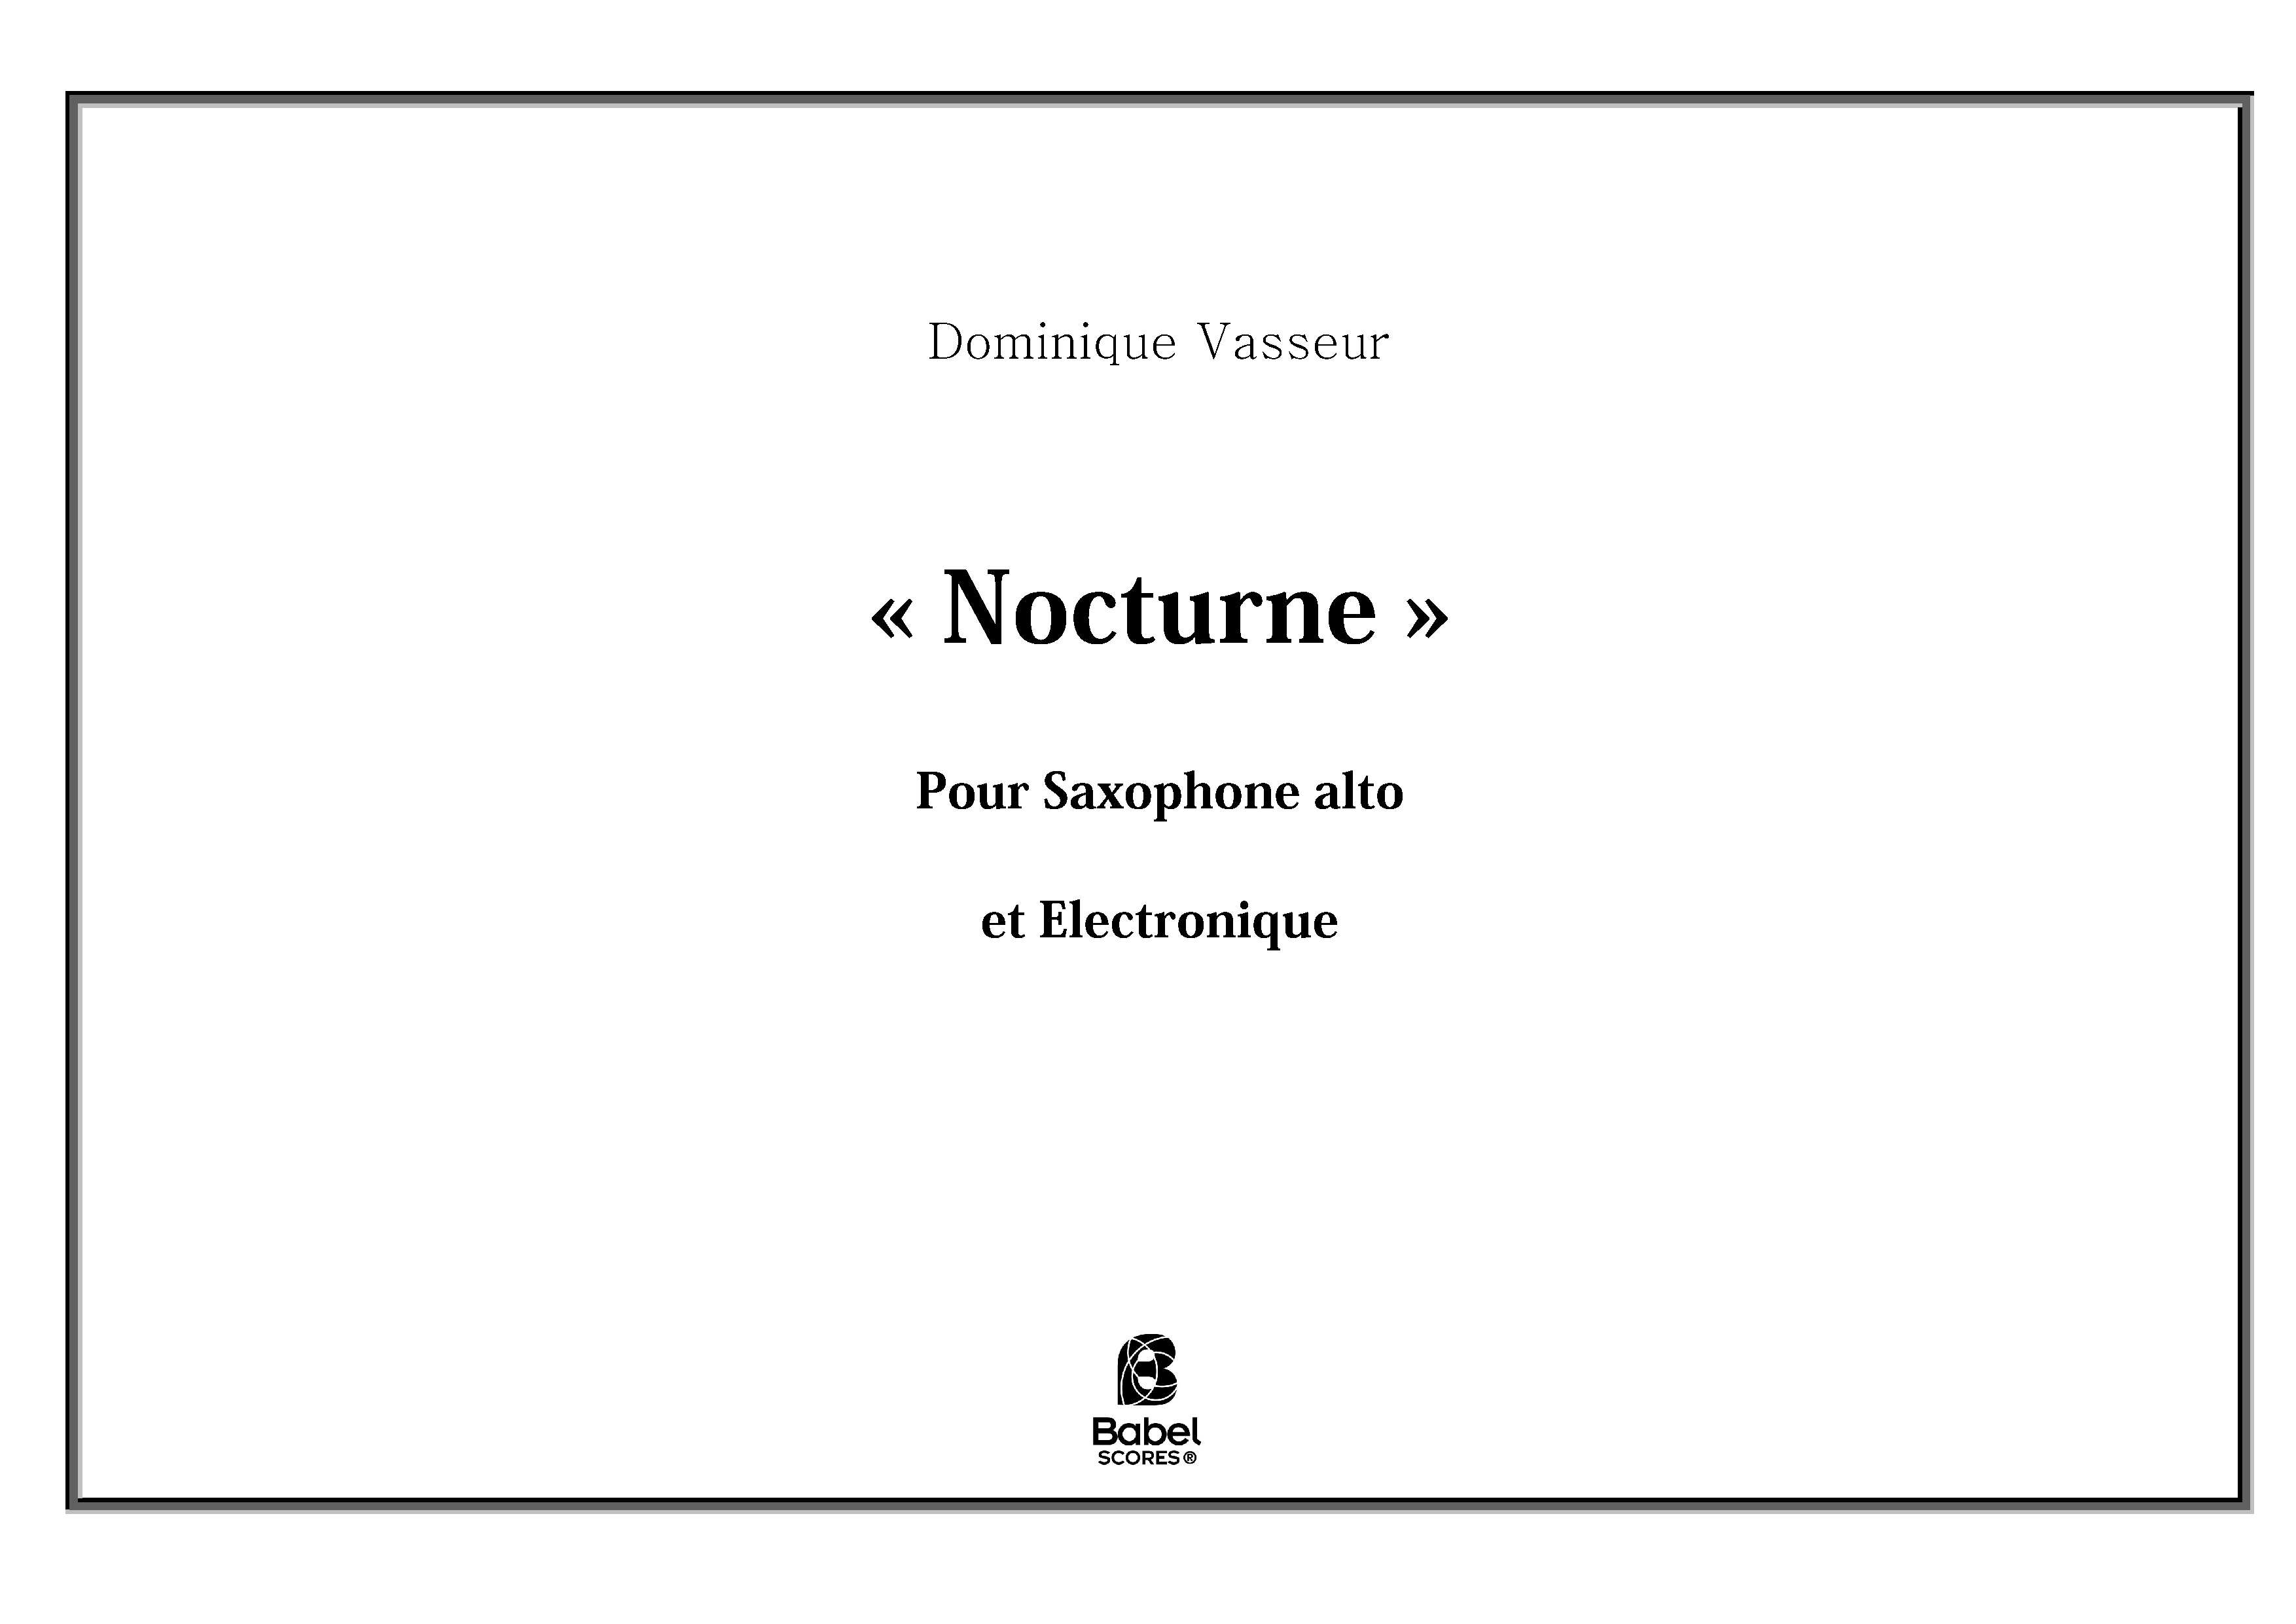 Nocturne A4 z 3 1 133